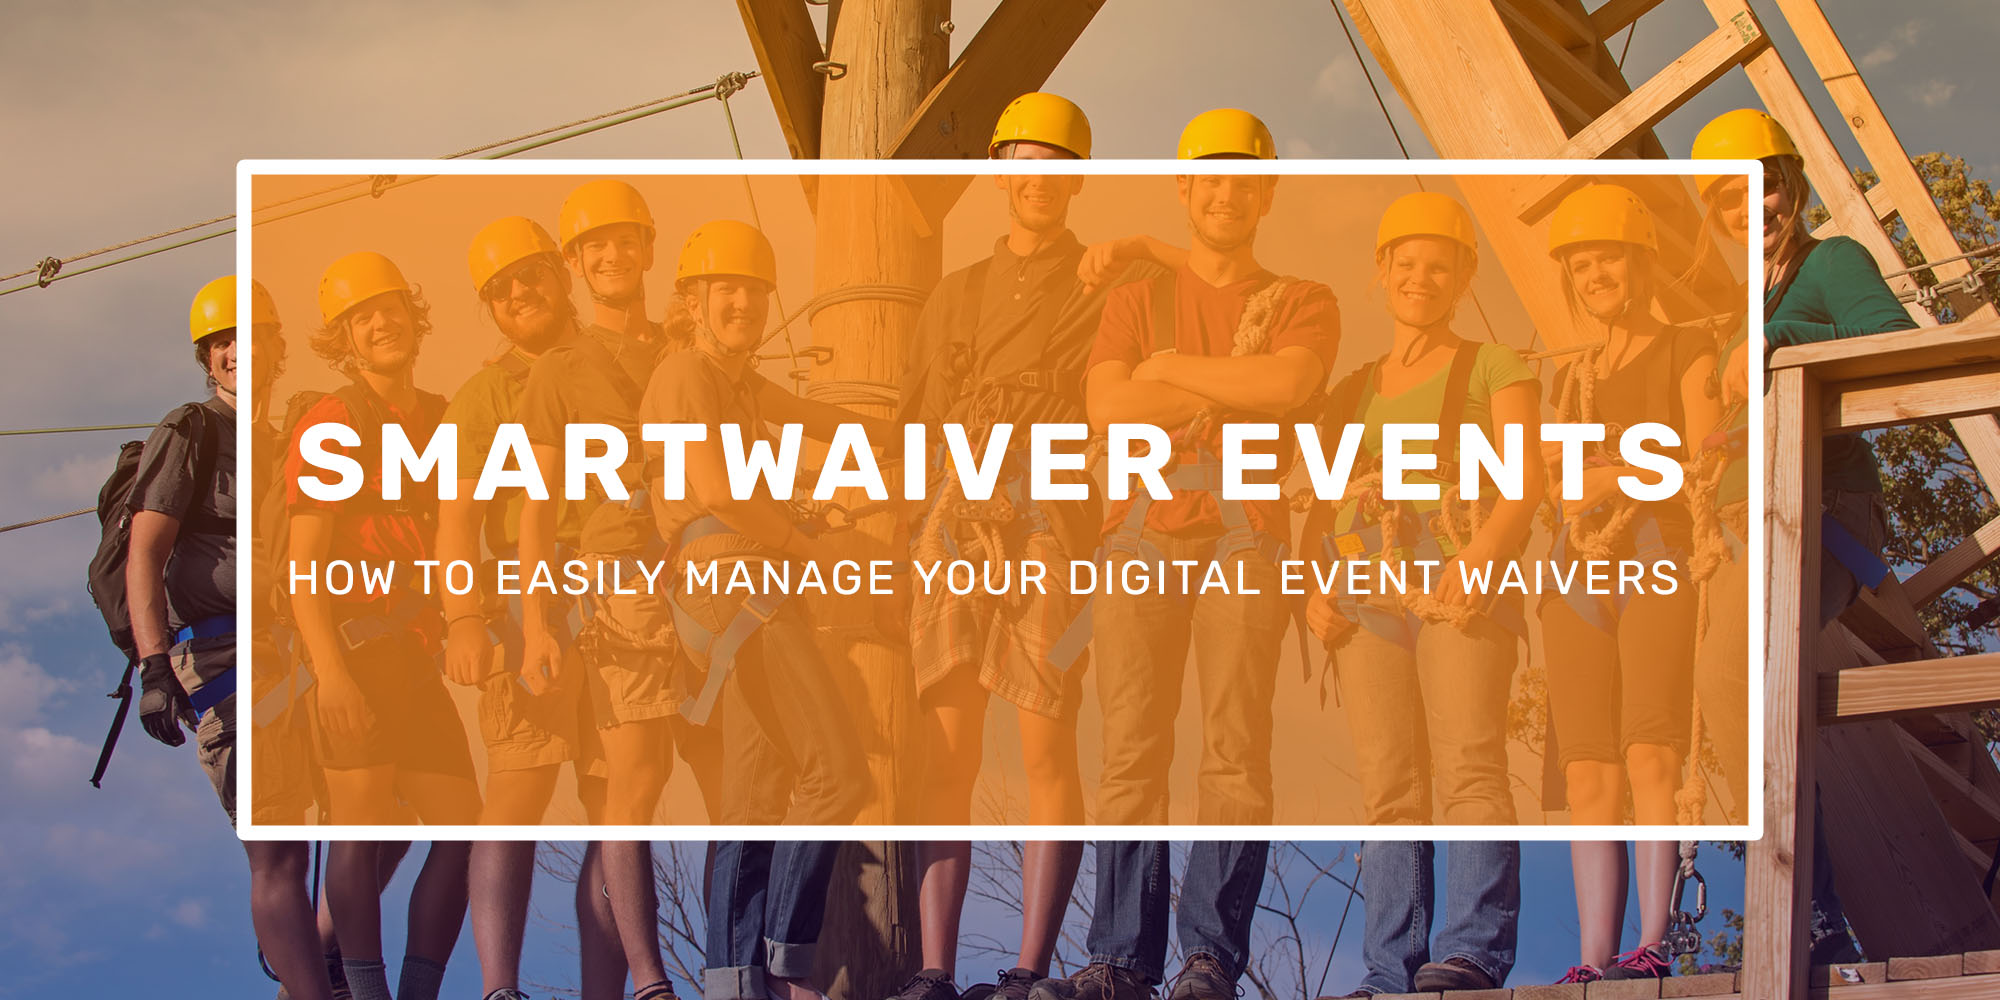 Smartwaiver Events Manager